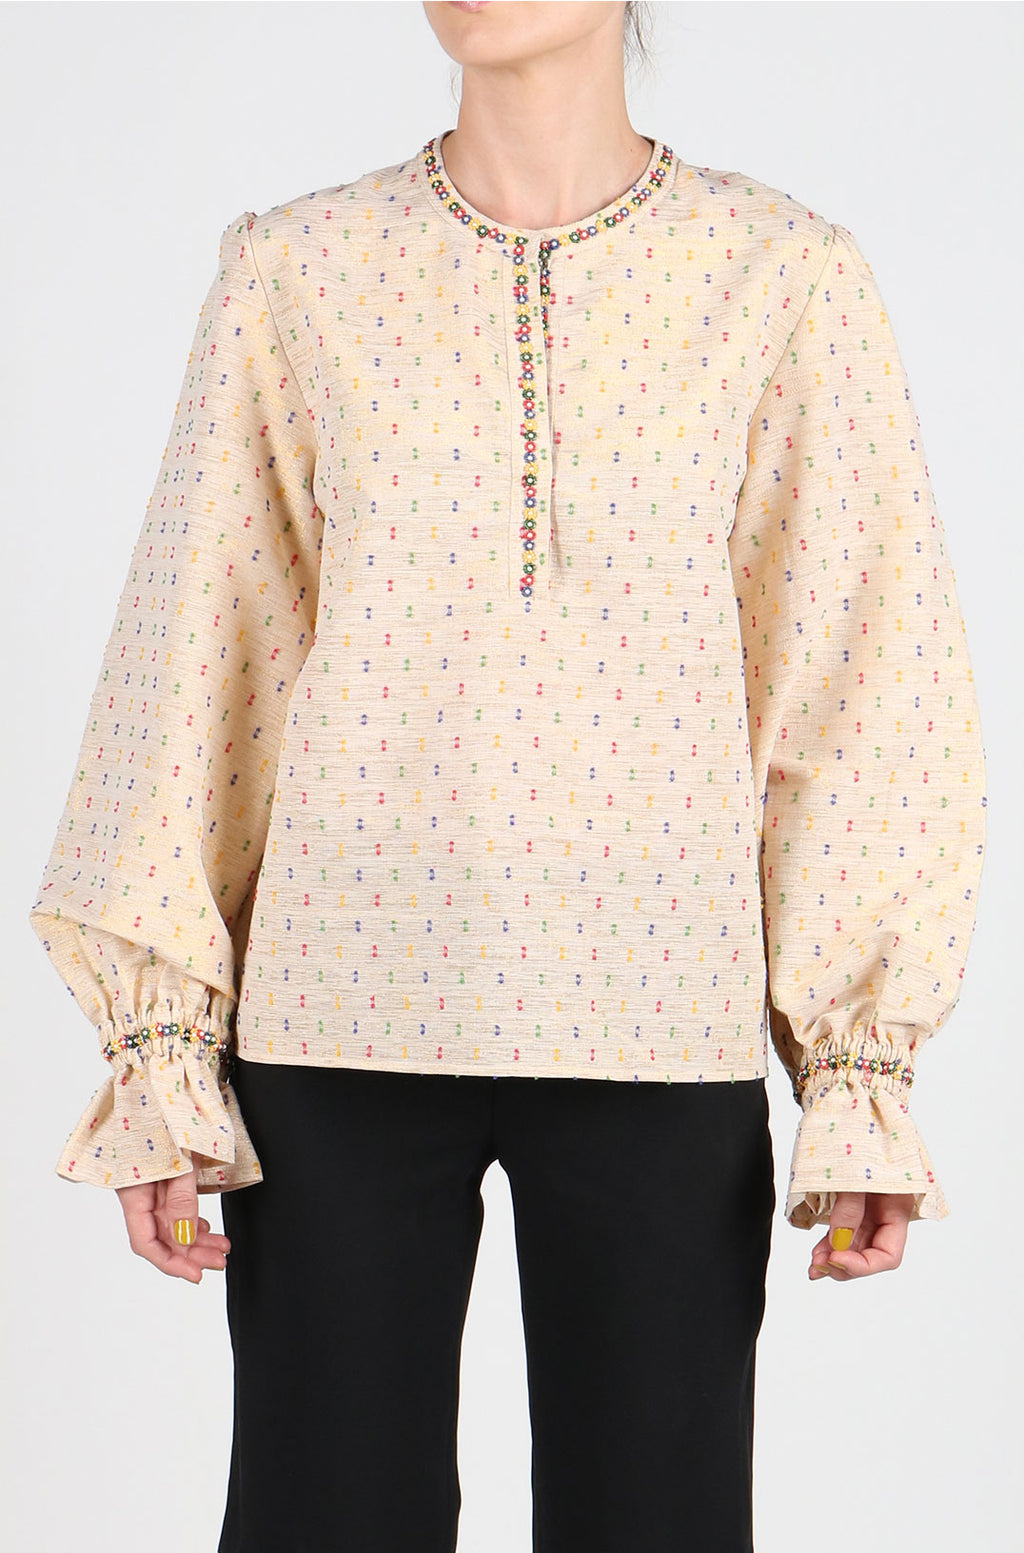 Fanm Mon Cream Blush Cotton Lurex Blouse with Multi Color Hand Beaded